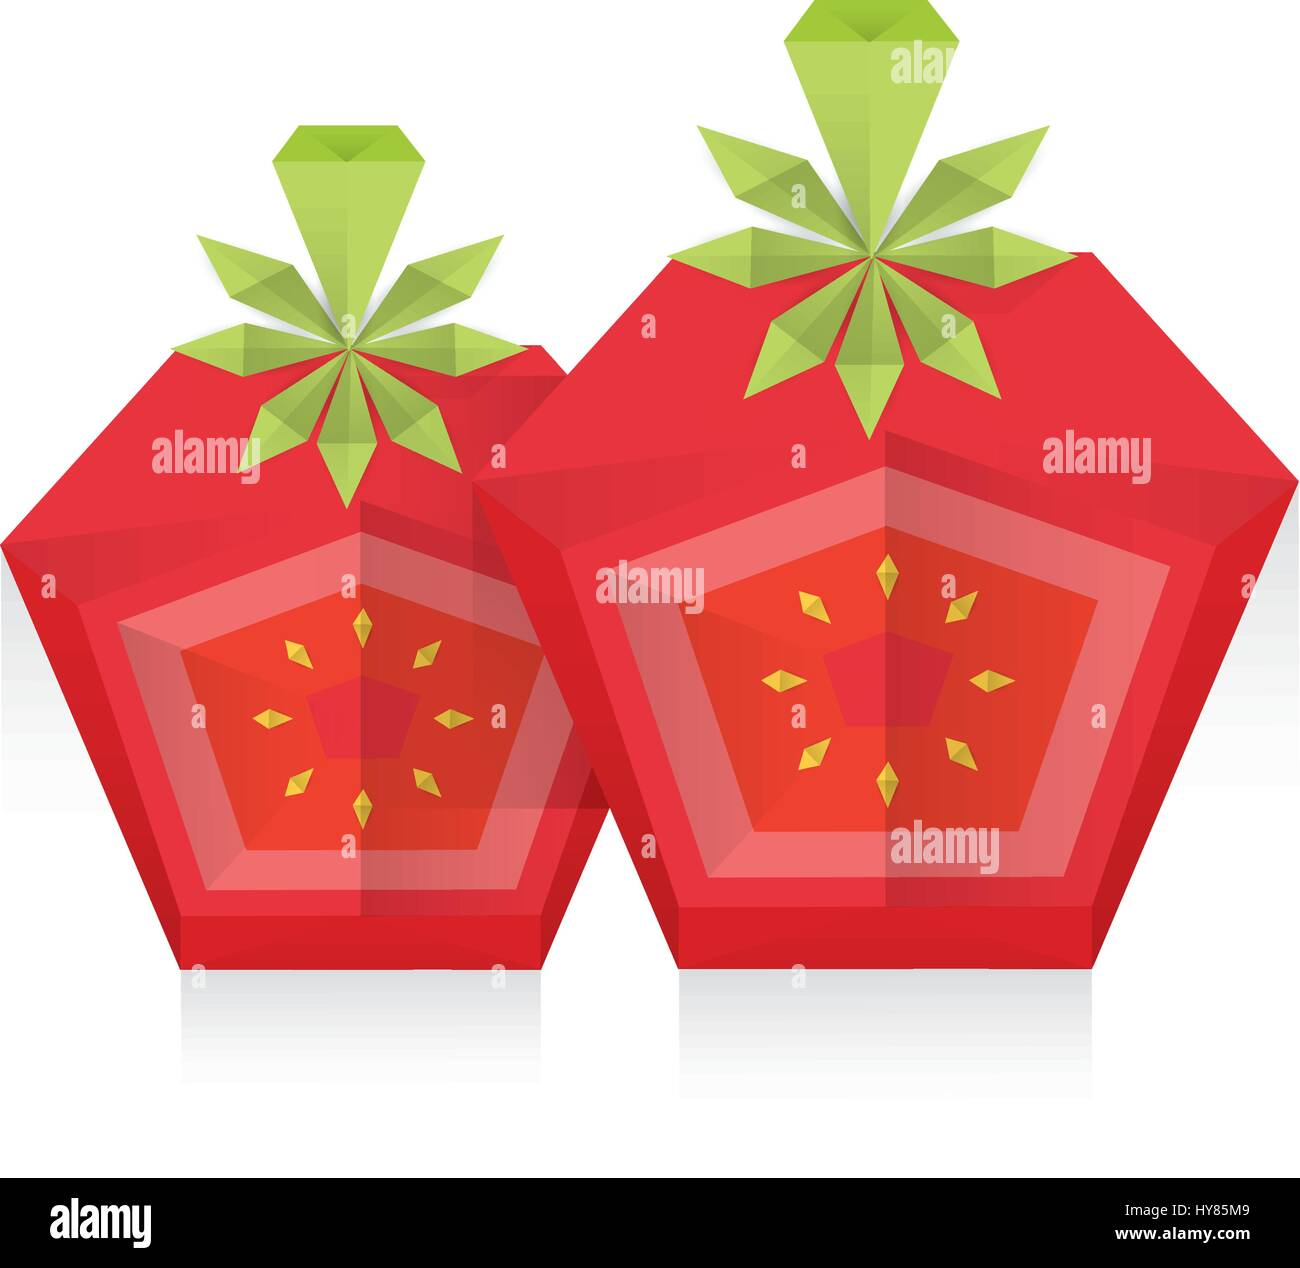 3d Origami Stock Photos Images Alamy Diagrams Free Download Dissect Tomato Icon Image